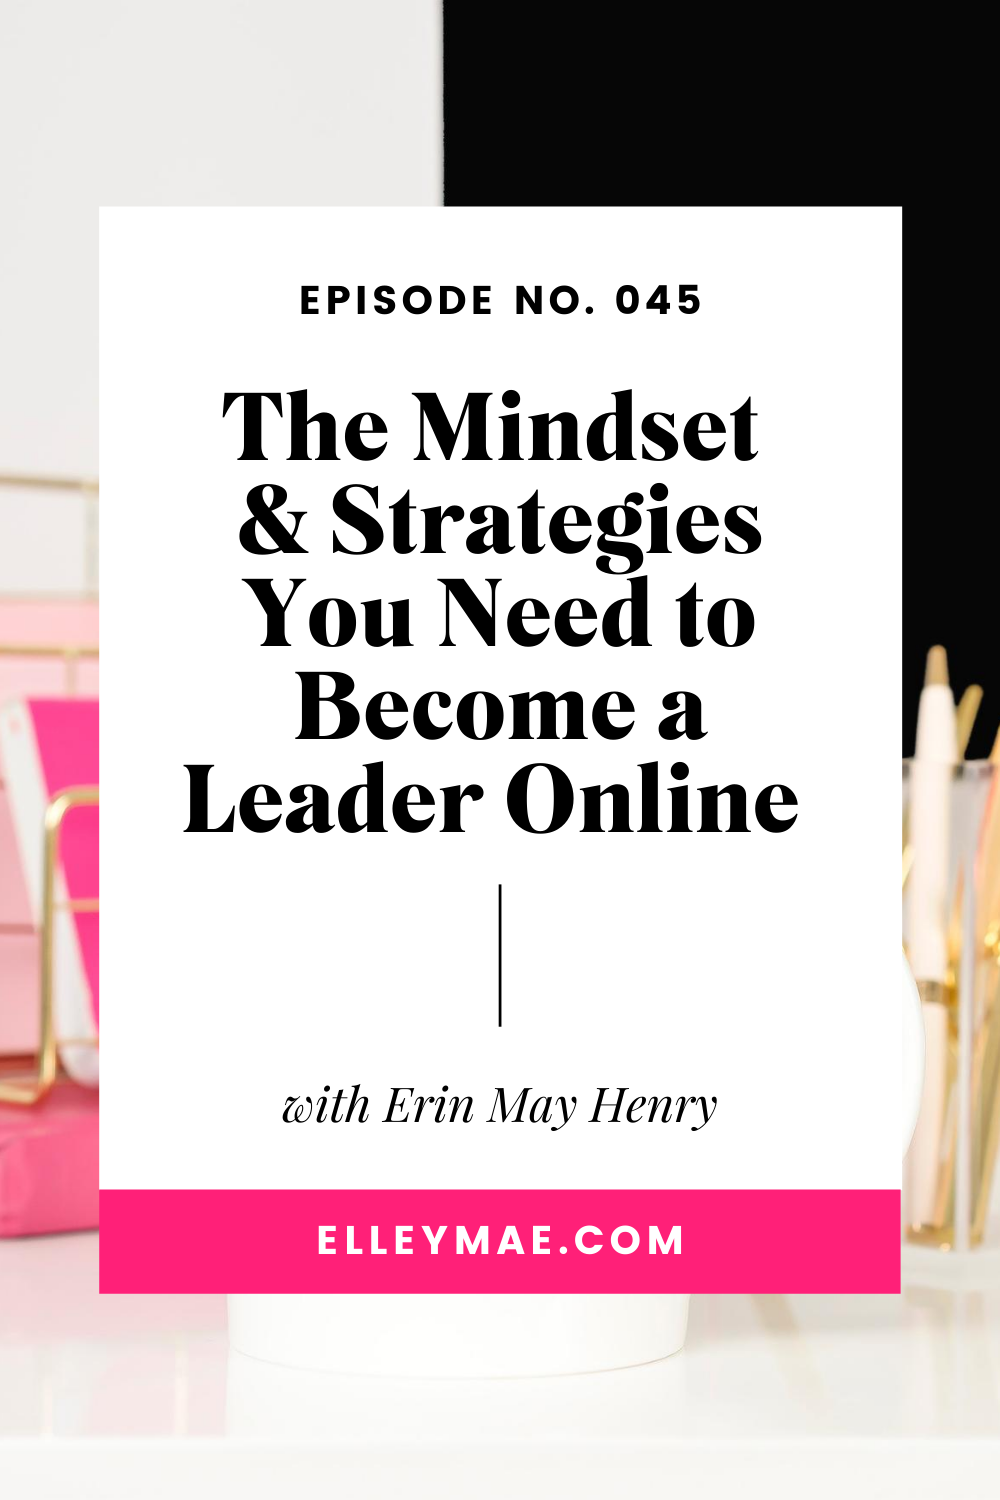 The Mindset & Strategies You Need to Become a Leader Online with Erin May Henry